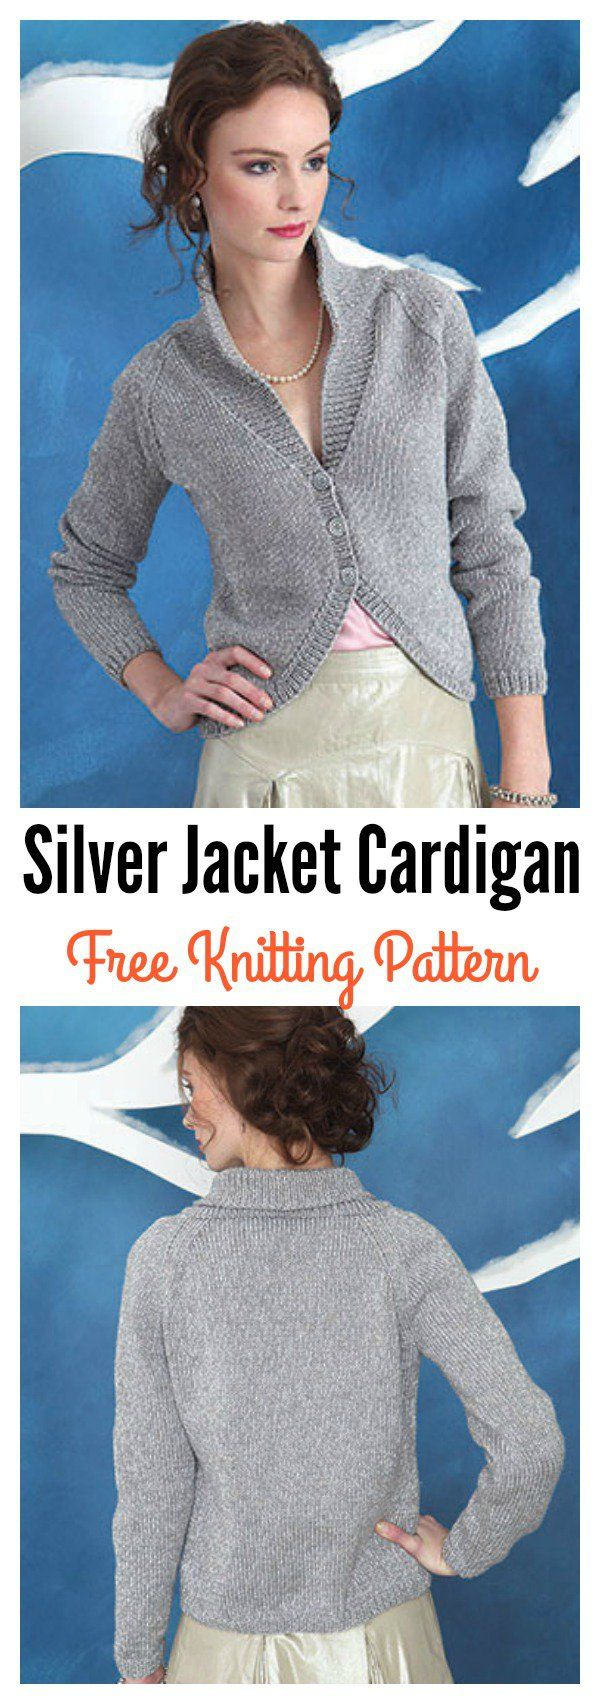 Stylish Cardigan Sweater Free Knitting Patterns | Knit patterns ...